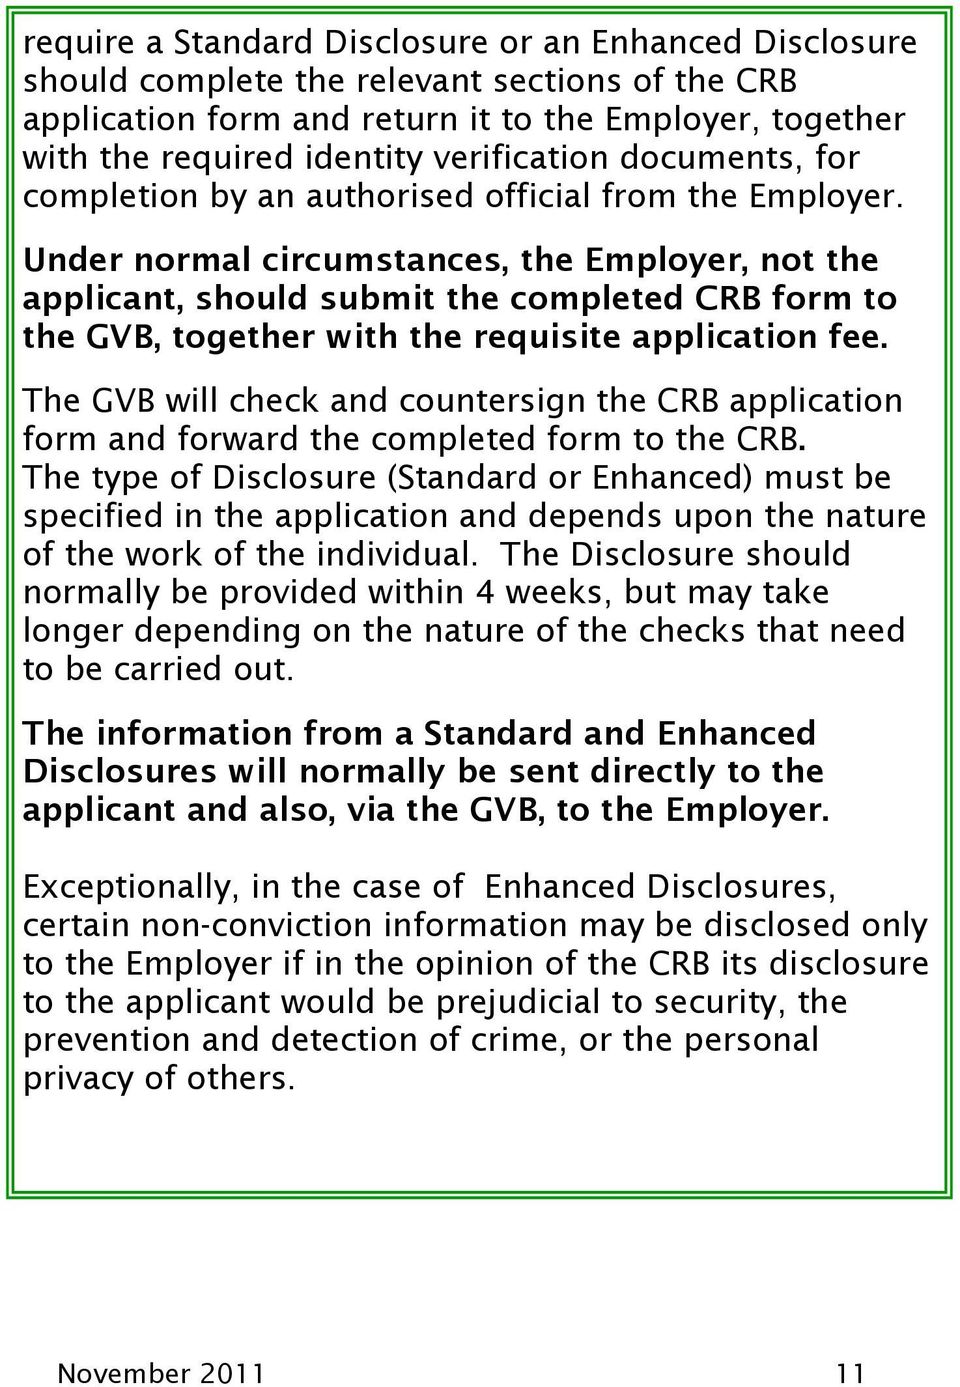 Under normal circumstances, the Employer, not the applicant, should submit the completed CRB form to the GVB, together with the requisite application fee.